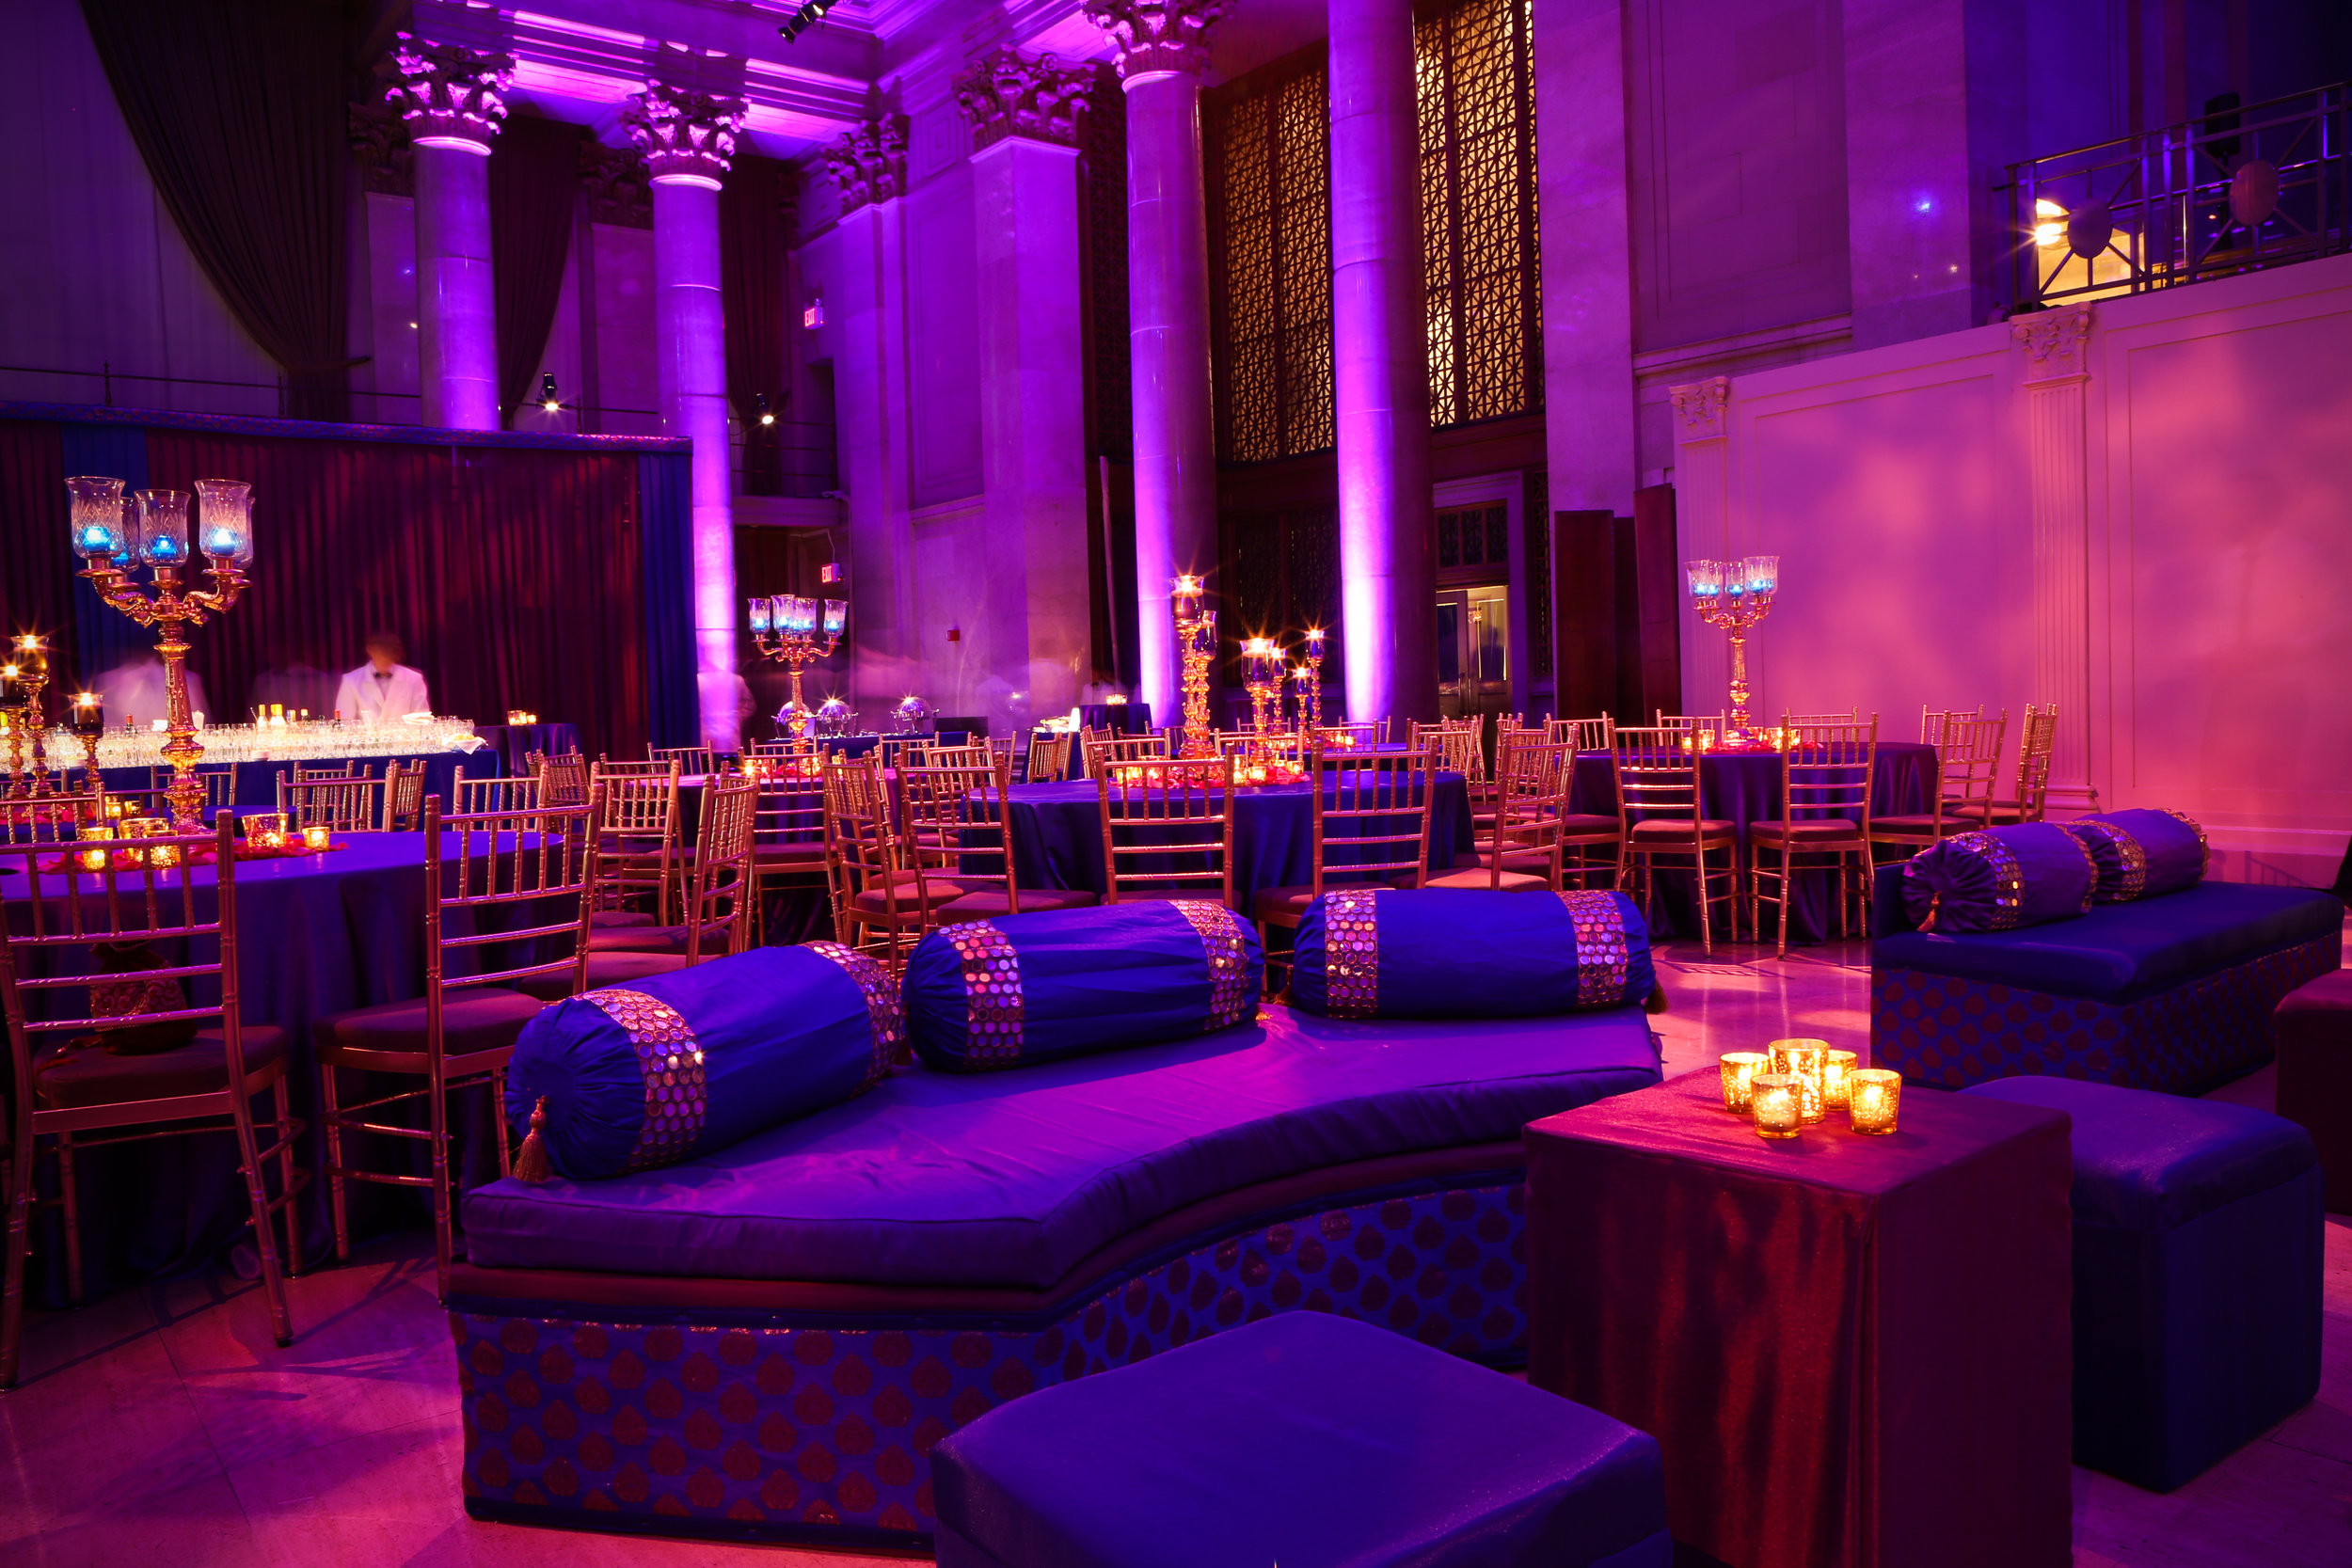 Blue and Purple Sangeet with Mehndi Sofas